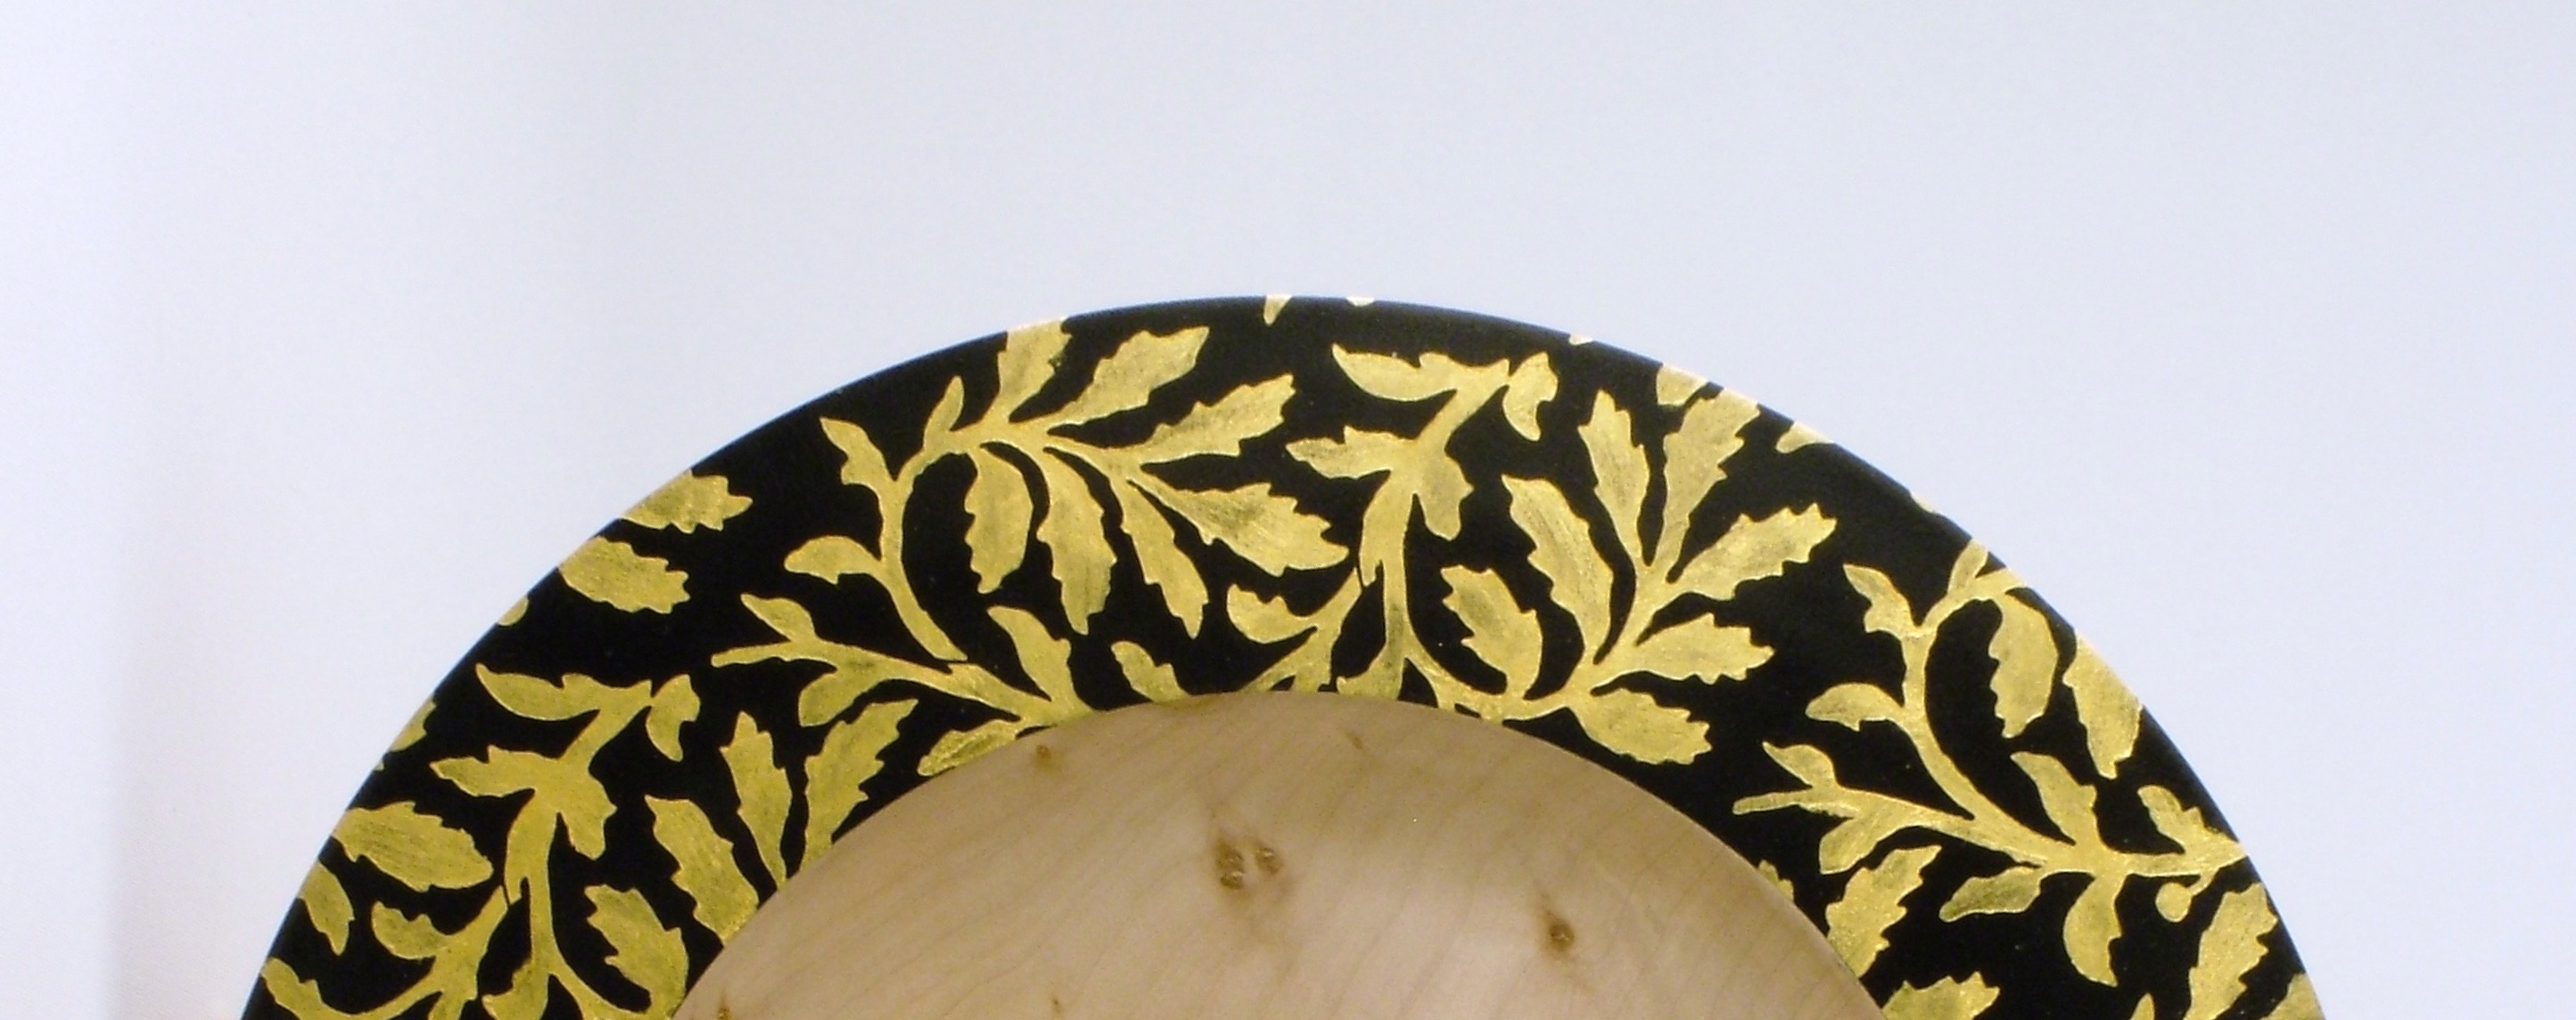 Detail View of the handmade wooden Gold Branch Bowl